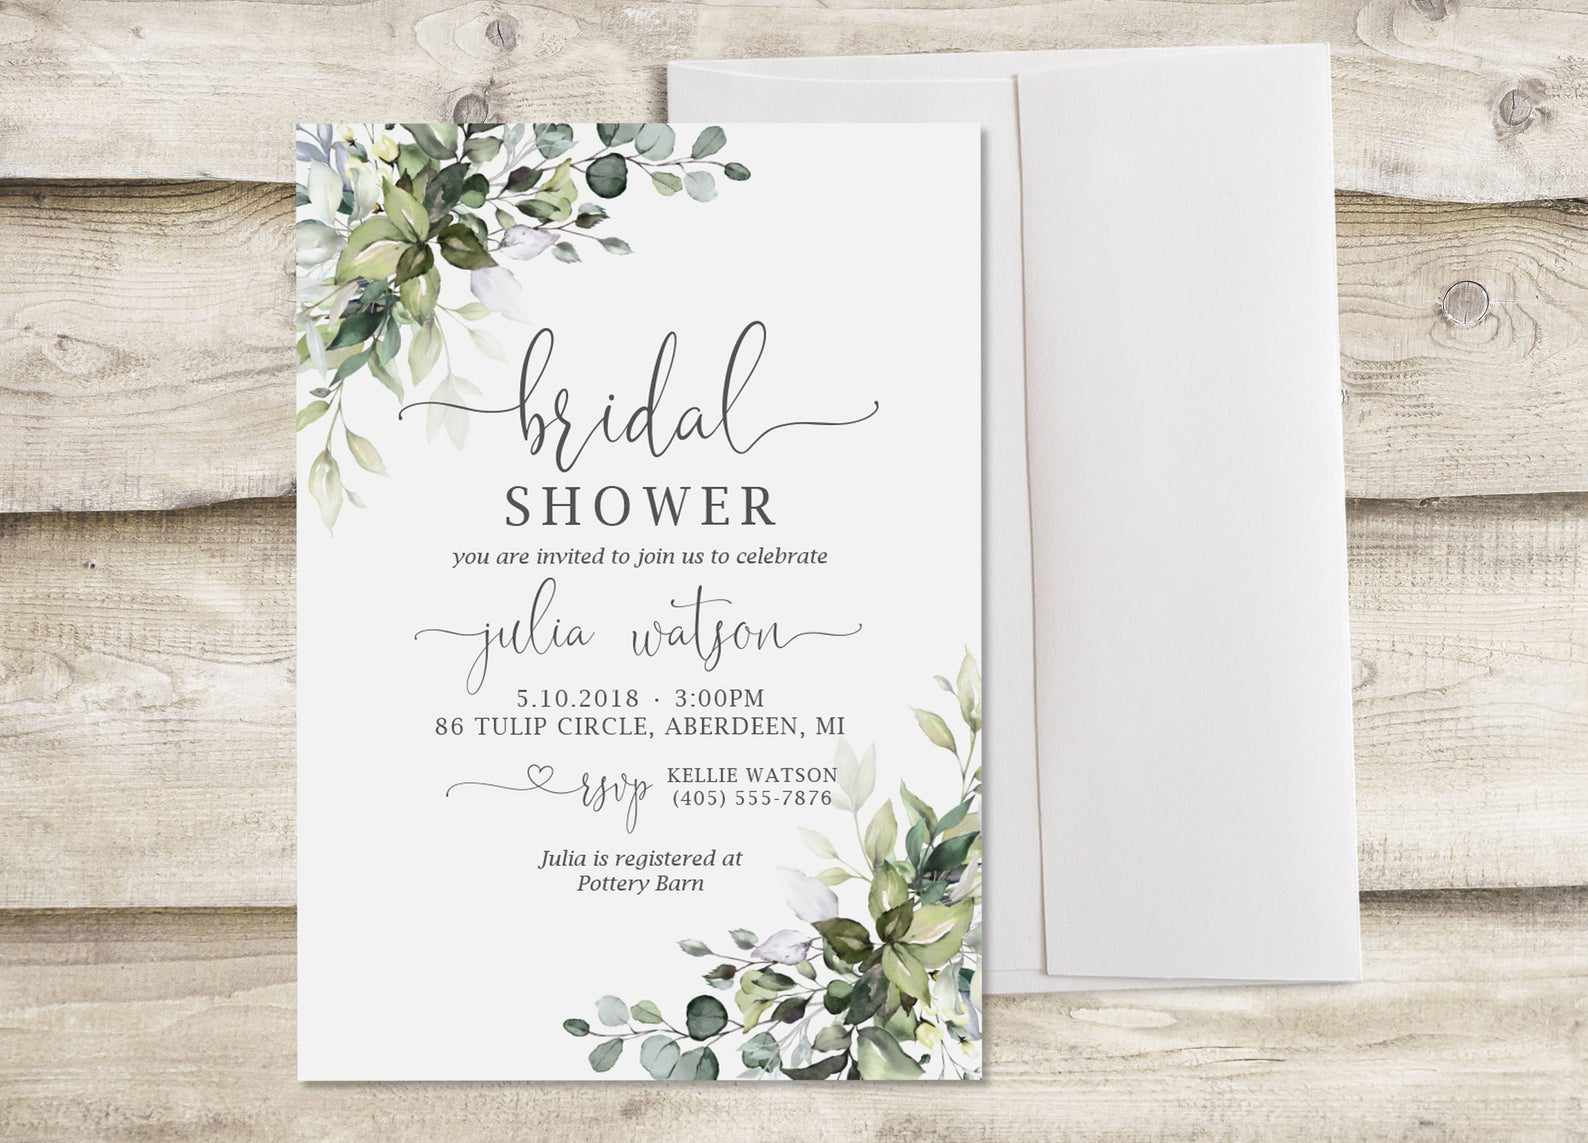 Bridal Shower Invitation Wording 101 Everything To Include On The